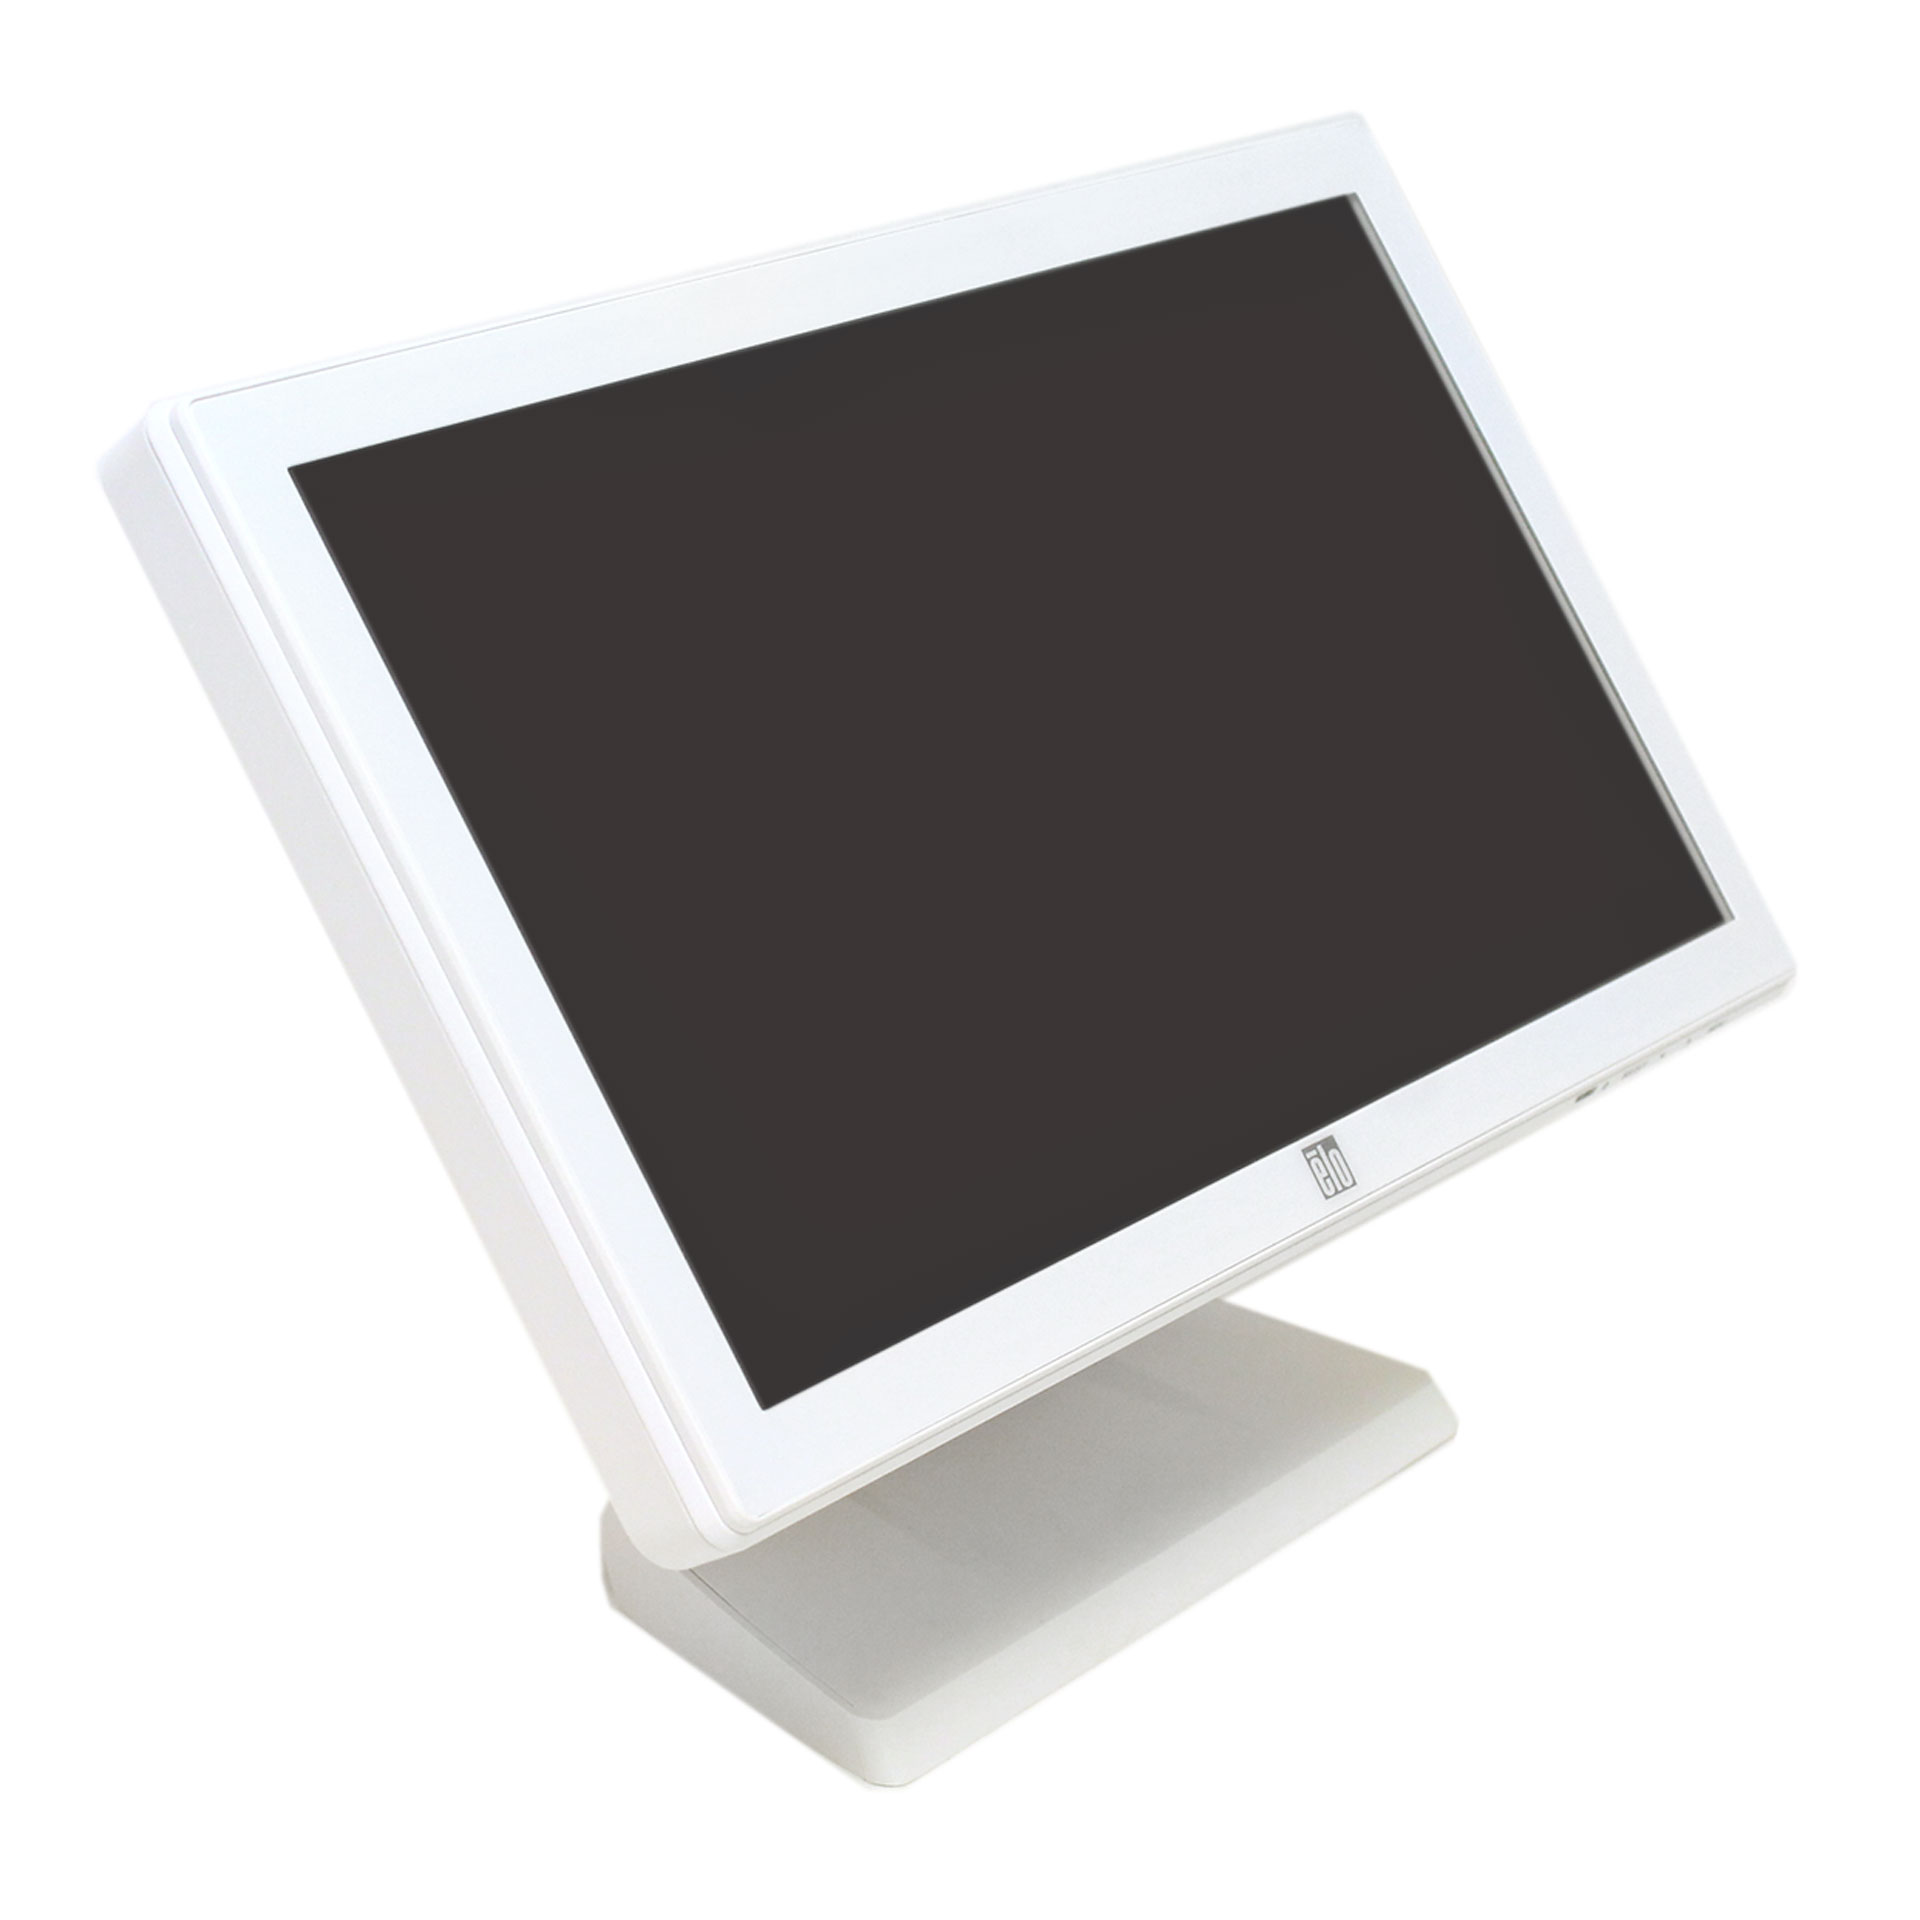 Elo Desktop Touch Screen Display 1519LM AccuTouch LCD 15.6""